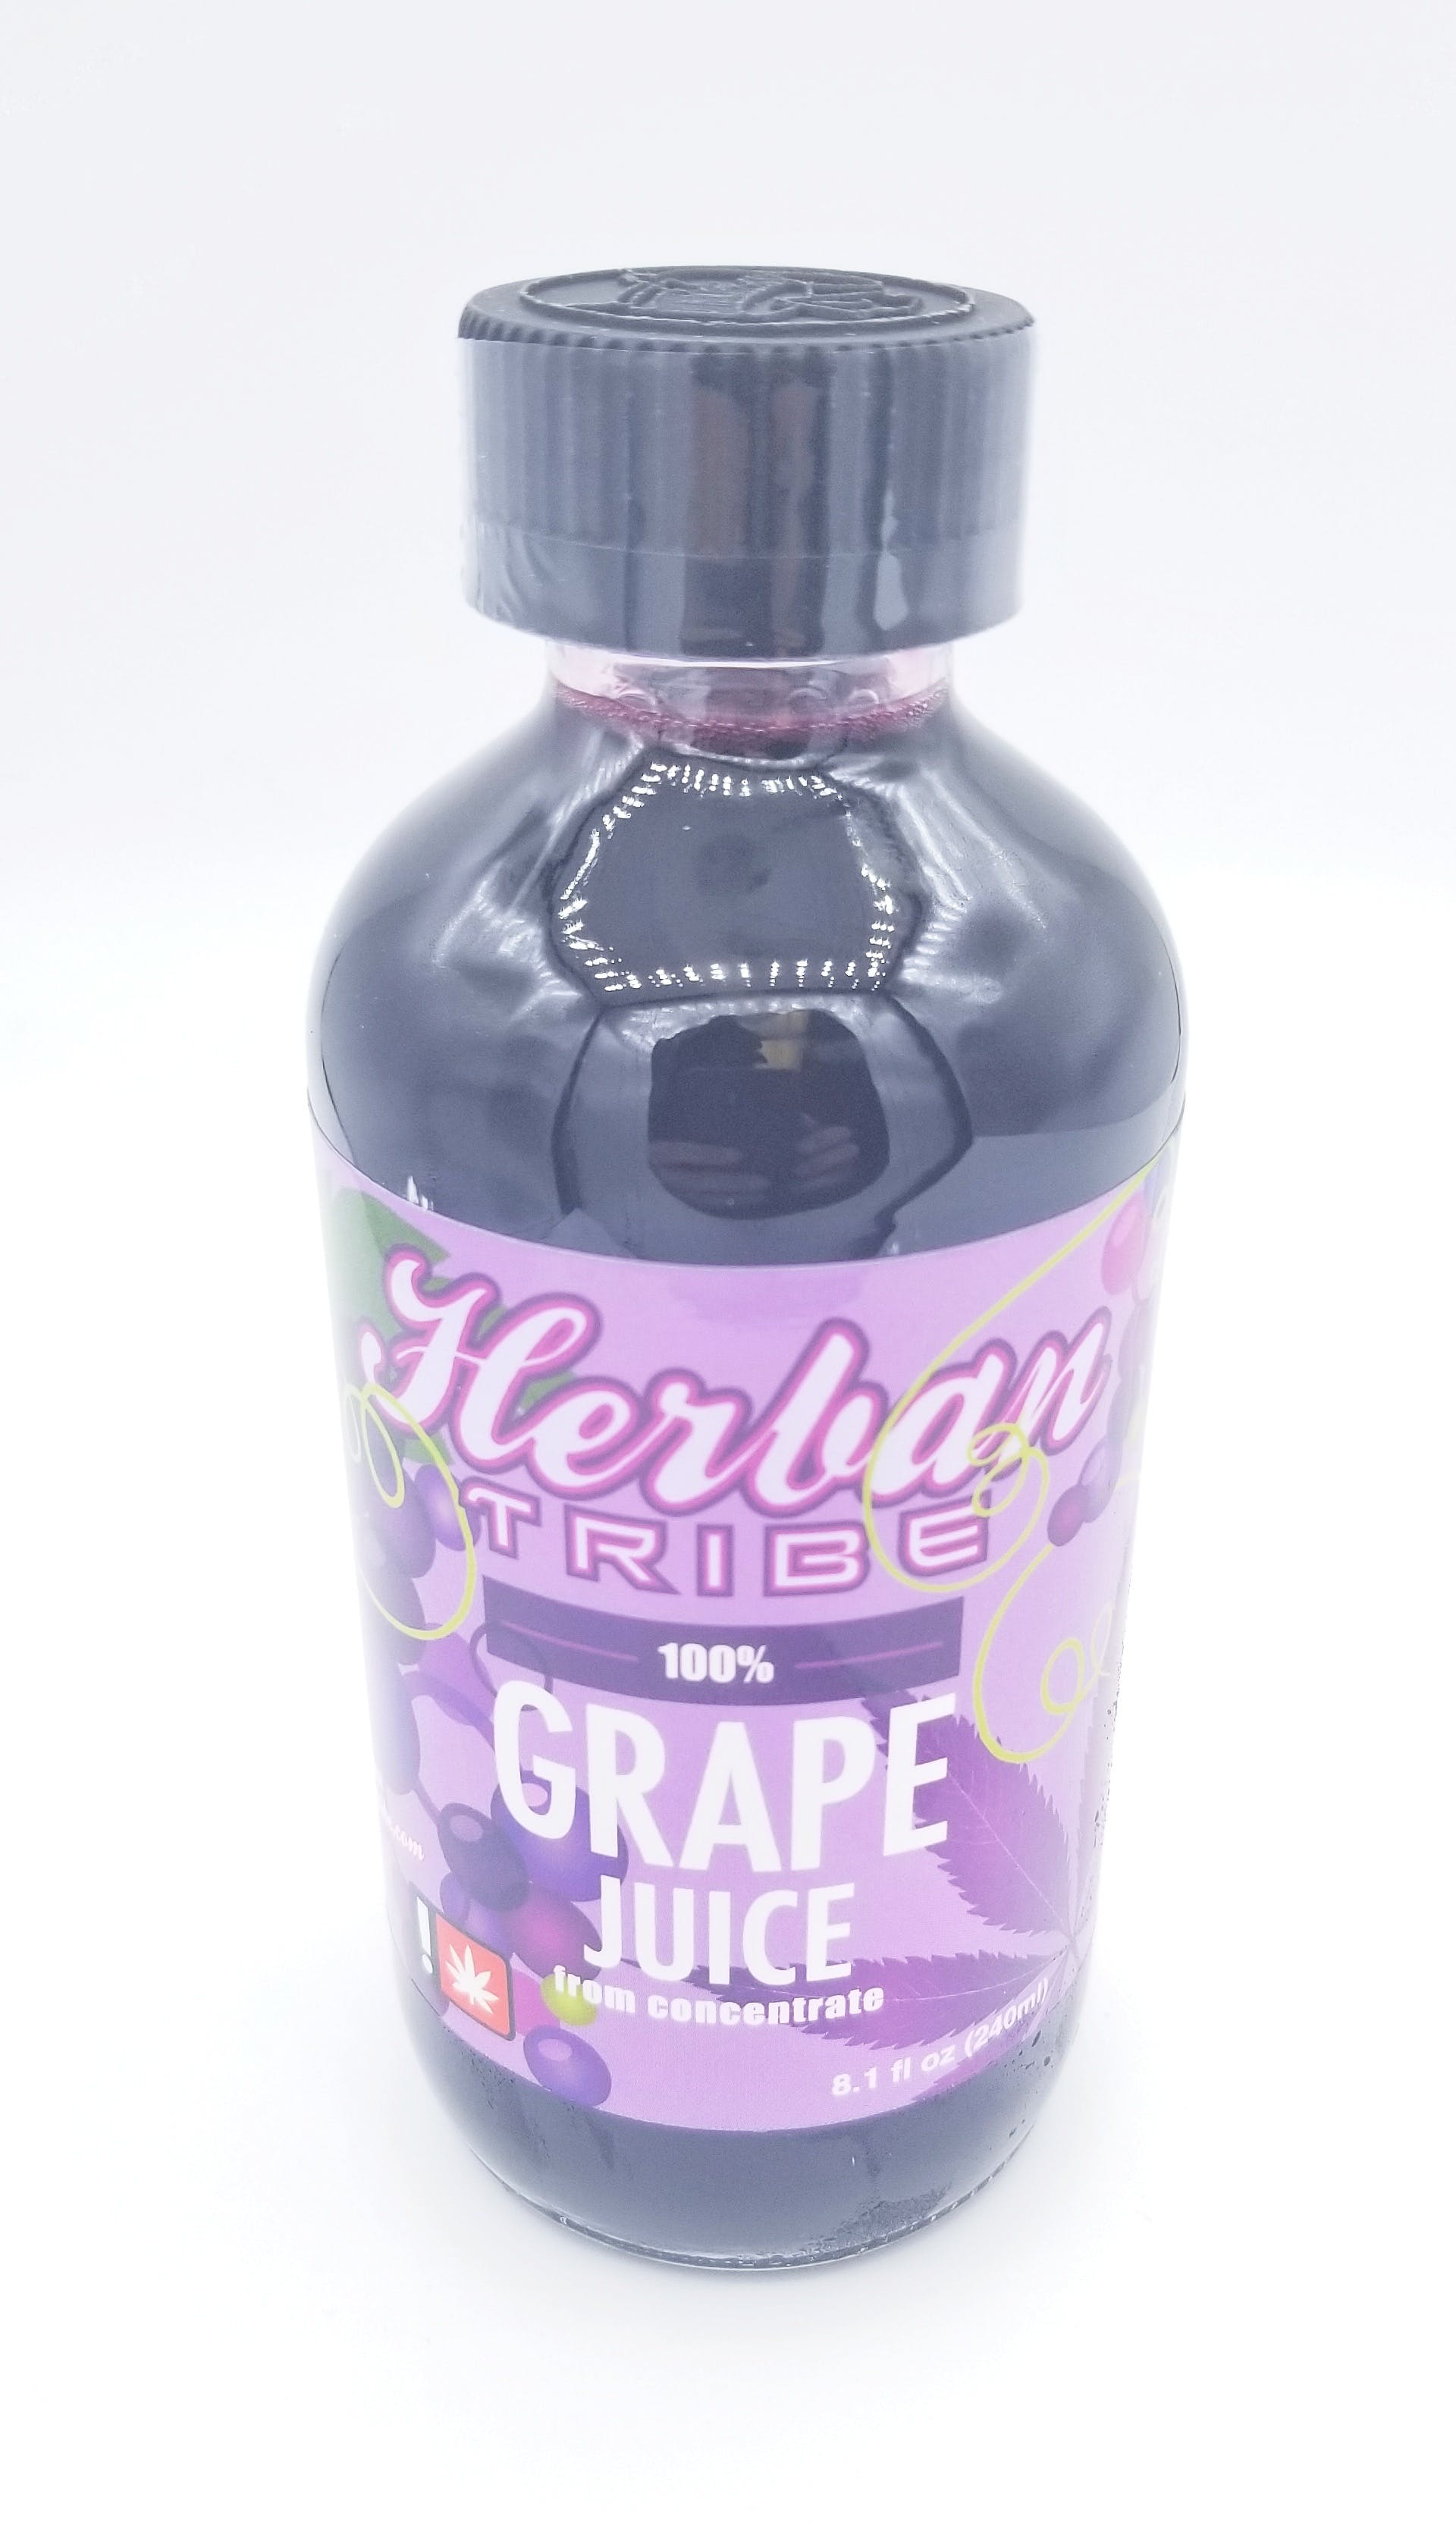 marijuana-dispensaries-1505-18th-st-springfield-herban-tribe-grape-juice-40mg-7730